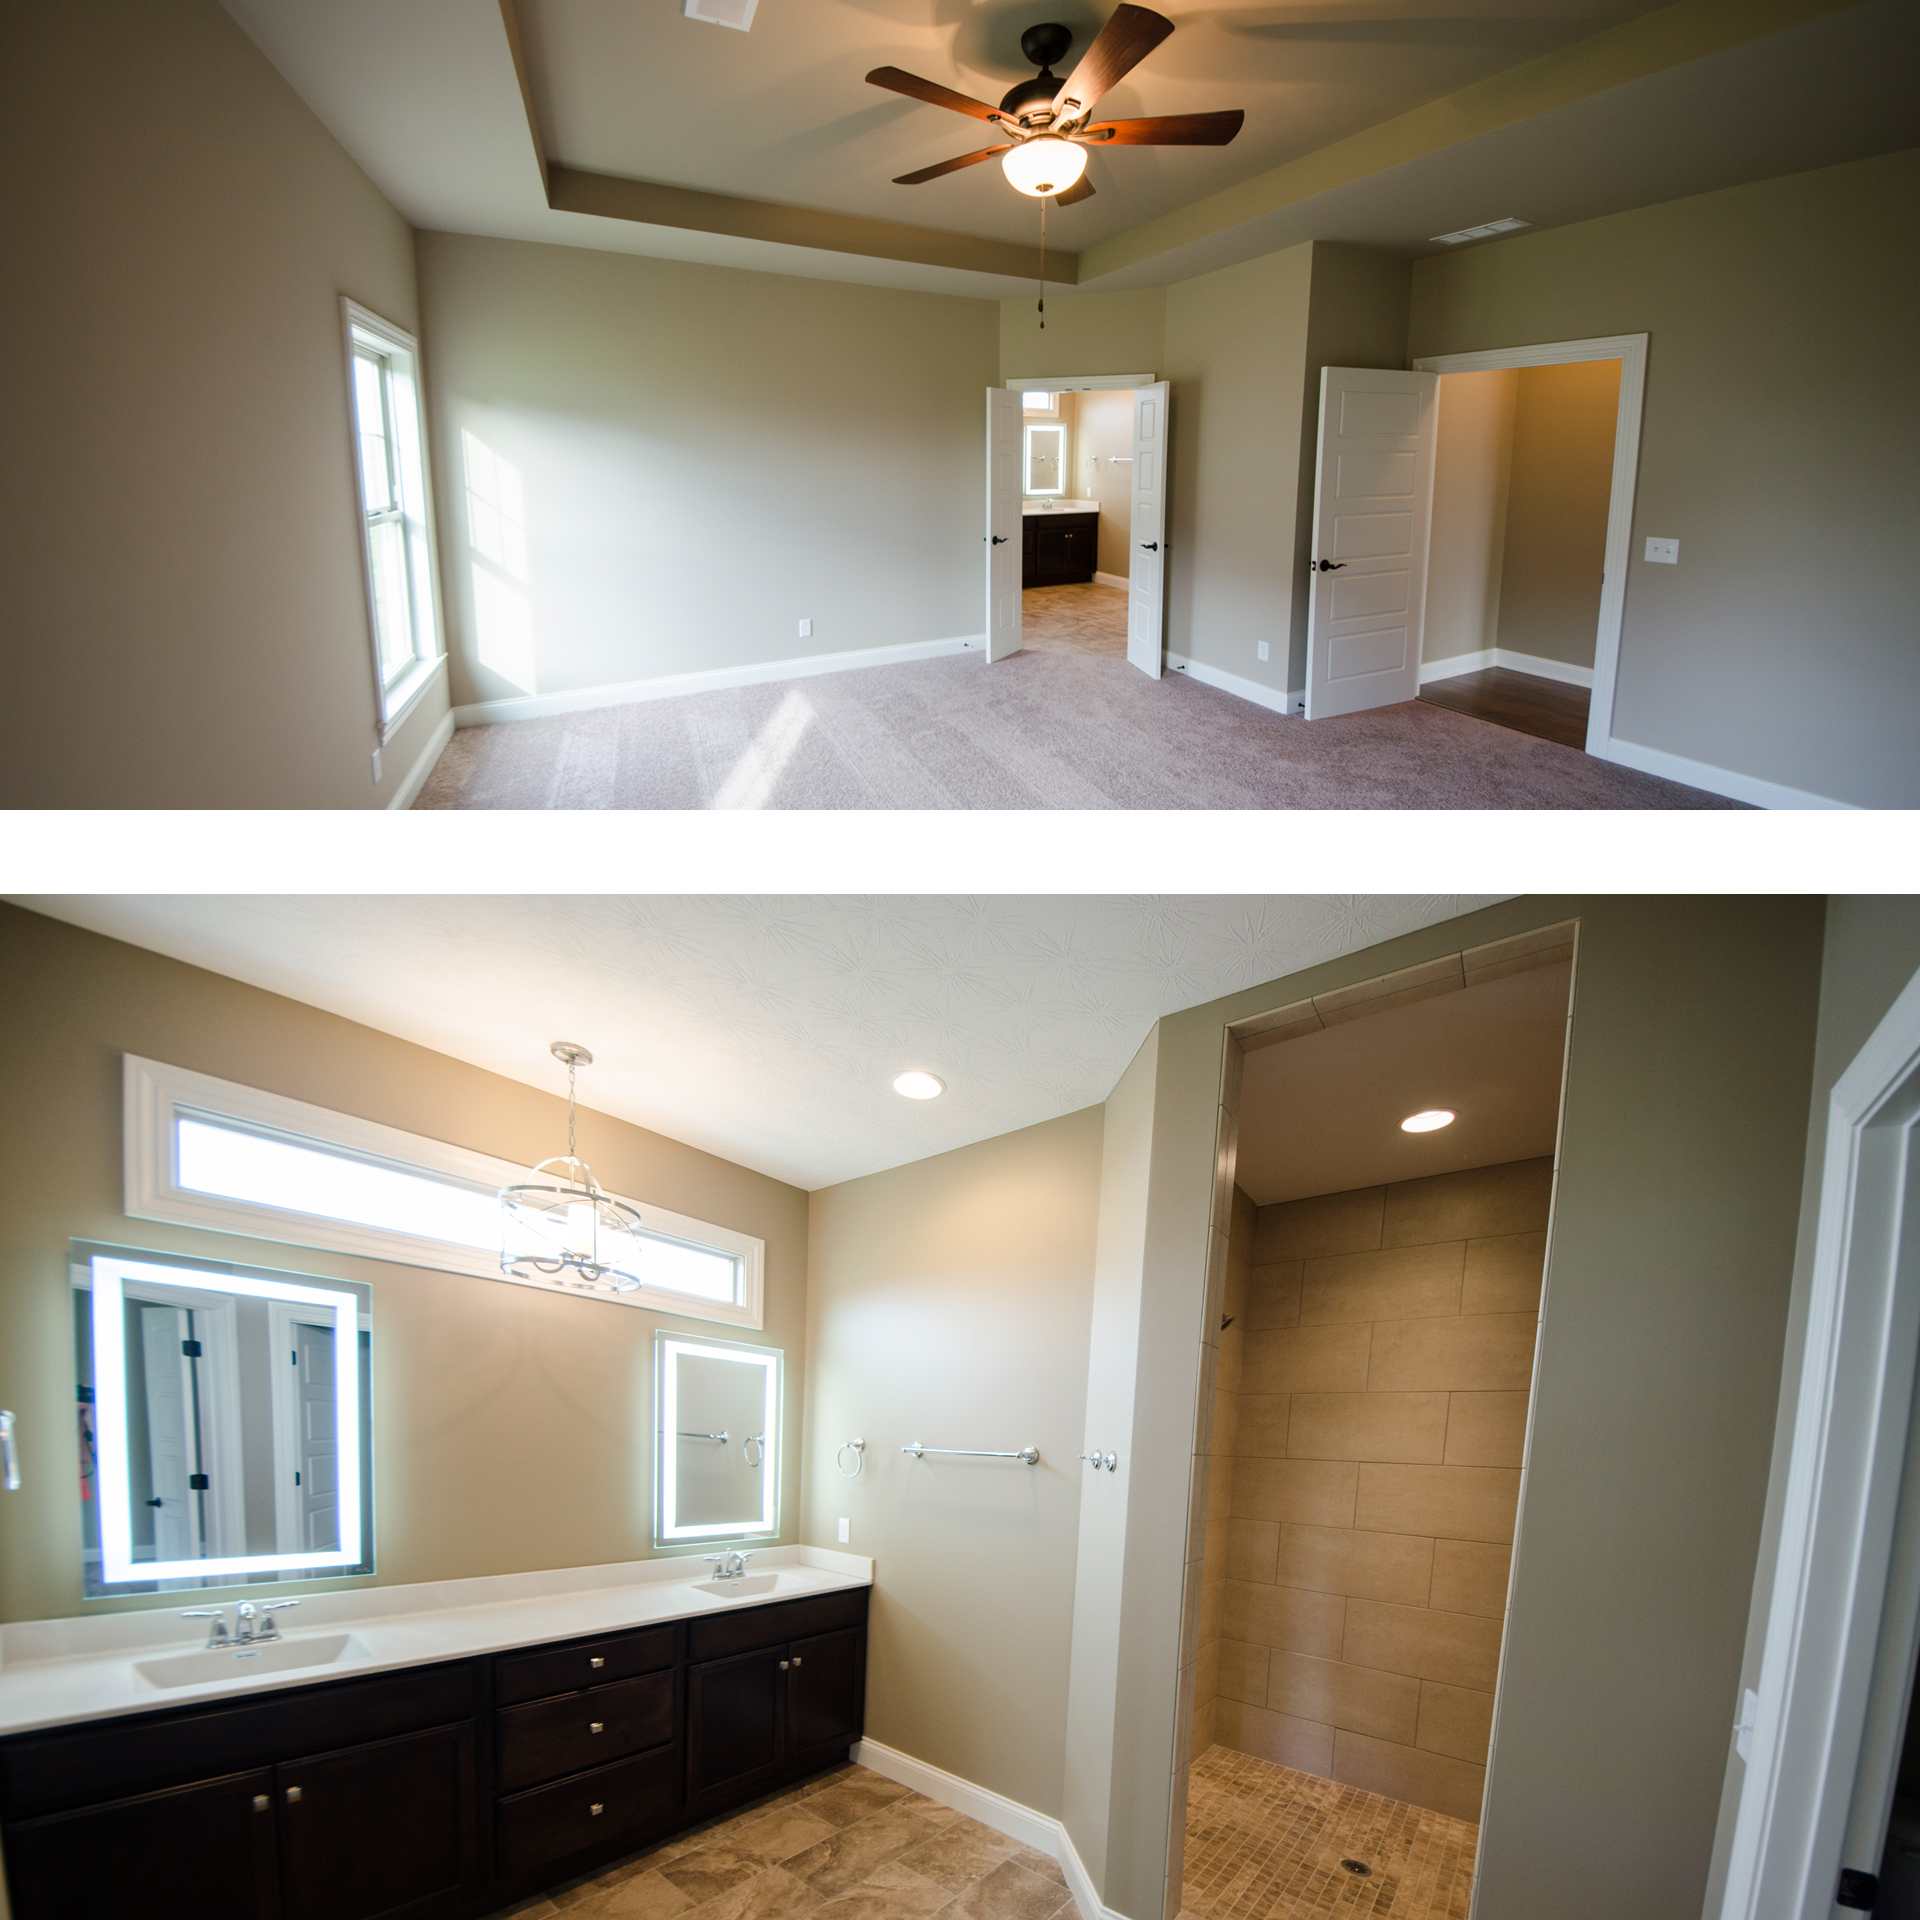 The Jocelyn custom home tour by Design Homes and Development.